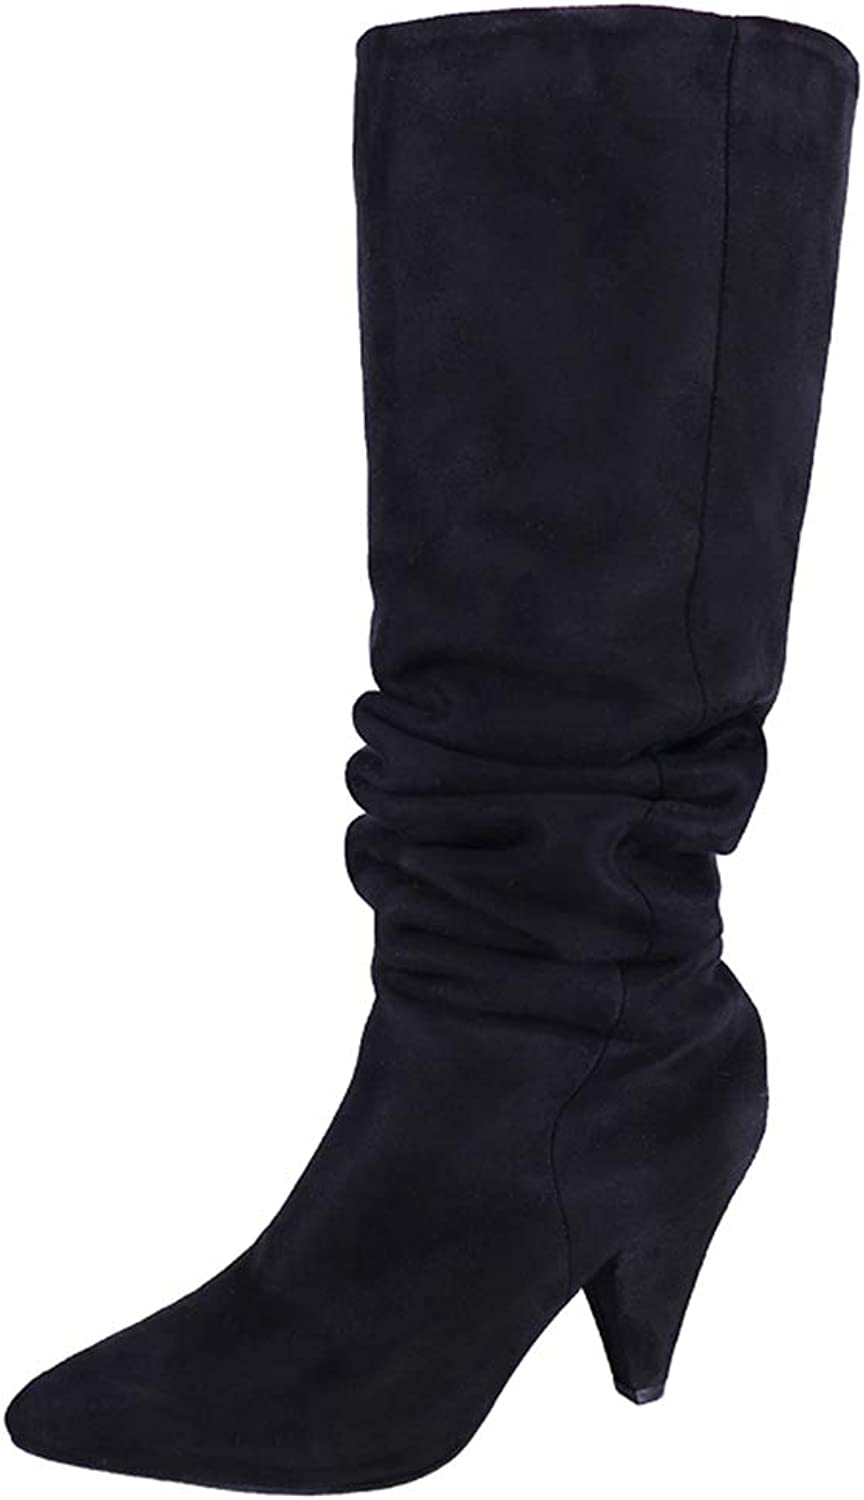 T-JULY Woman Chunky High Heels shoes Women Pumps Winter Knee-High Boots Gladiator Ladies Femme Girls